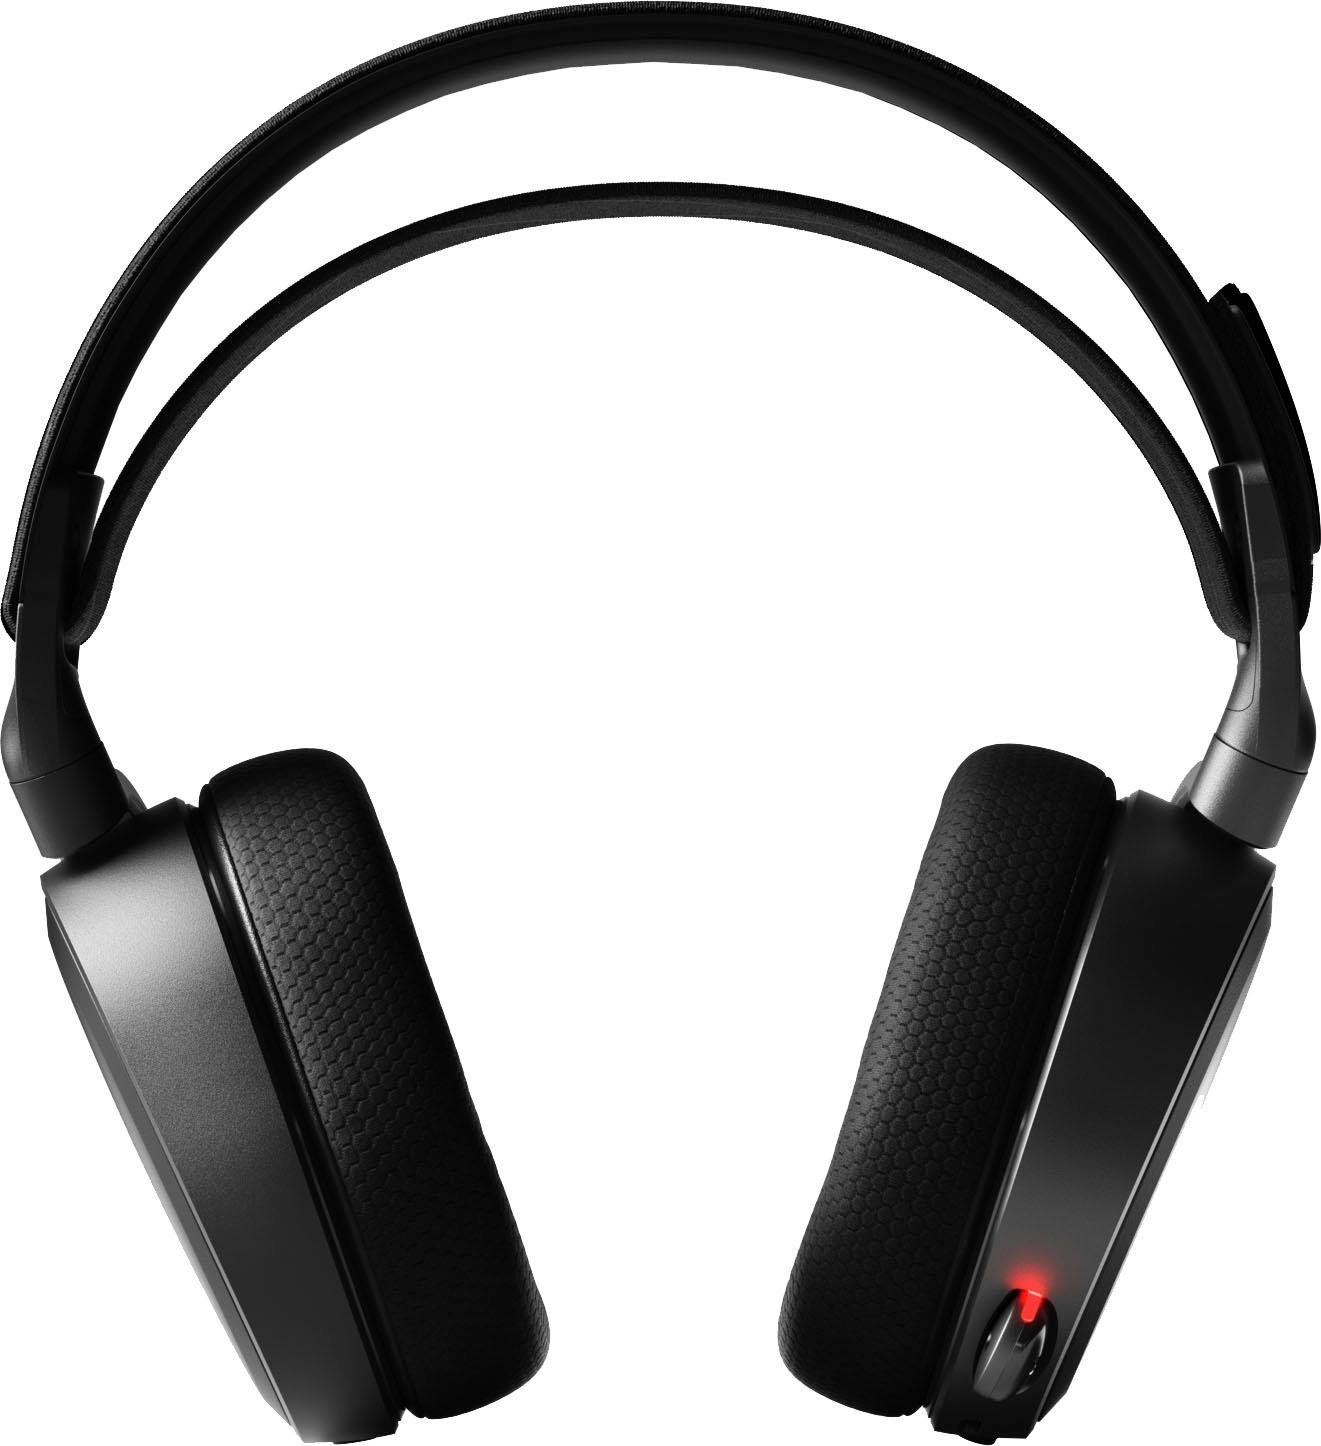 Steelseries »Arctis 7 (2019 Edition) Wireless« gaming-headset (wifi, ruisonderdrukking) goedkoop op otto.nl kopen